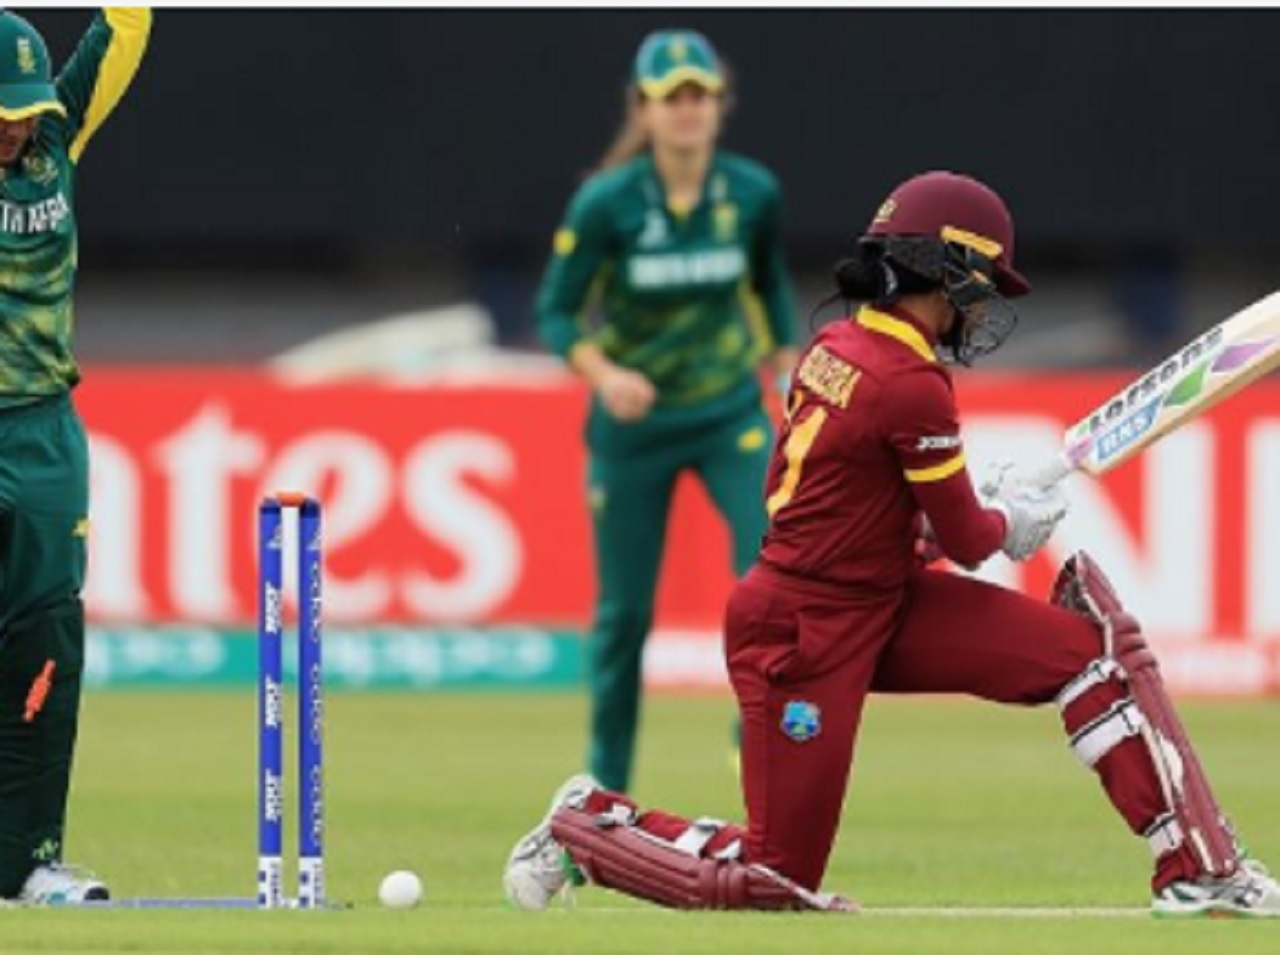 Action from the West Indies, South Africa match in the ICC Women's World Cup on Sunday.